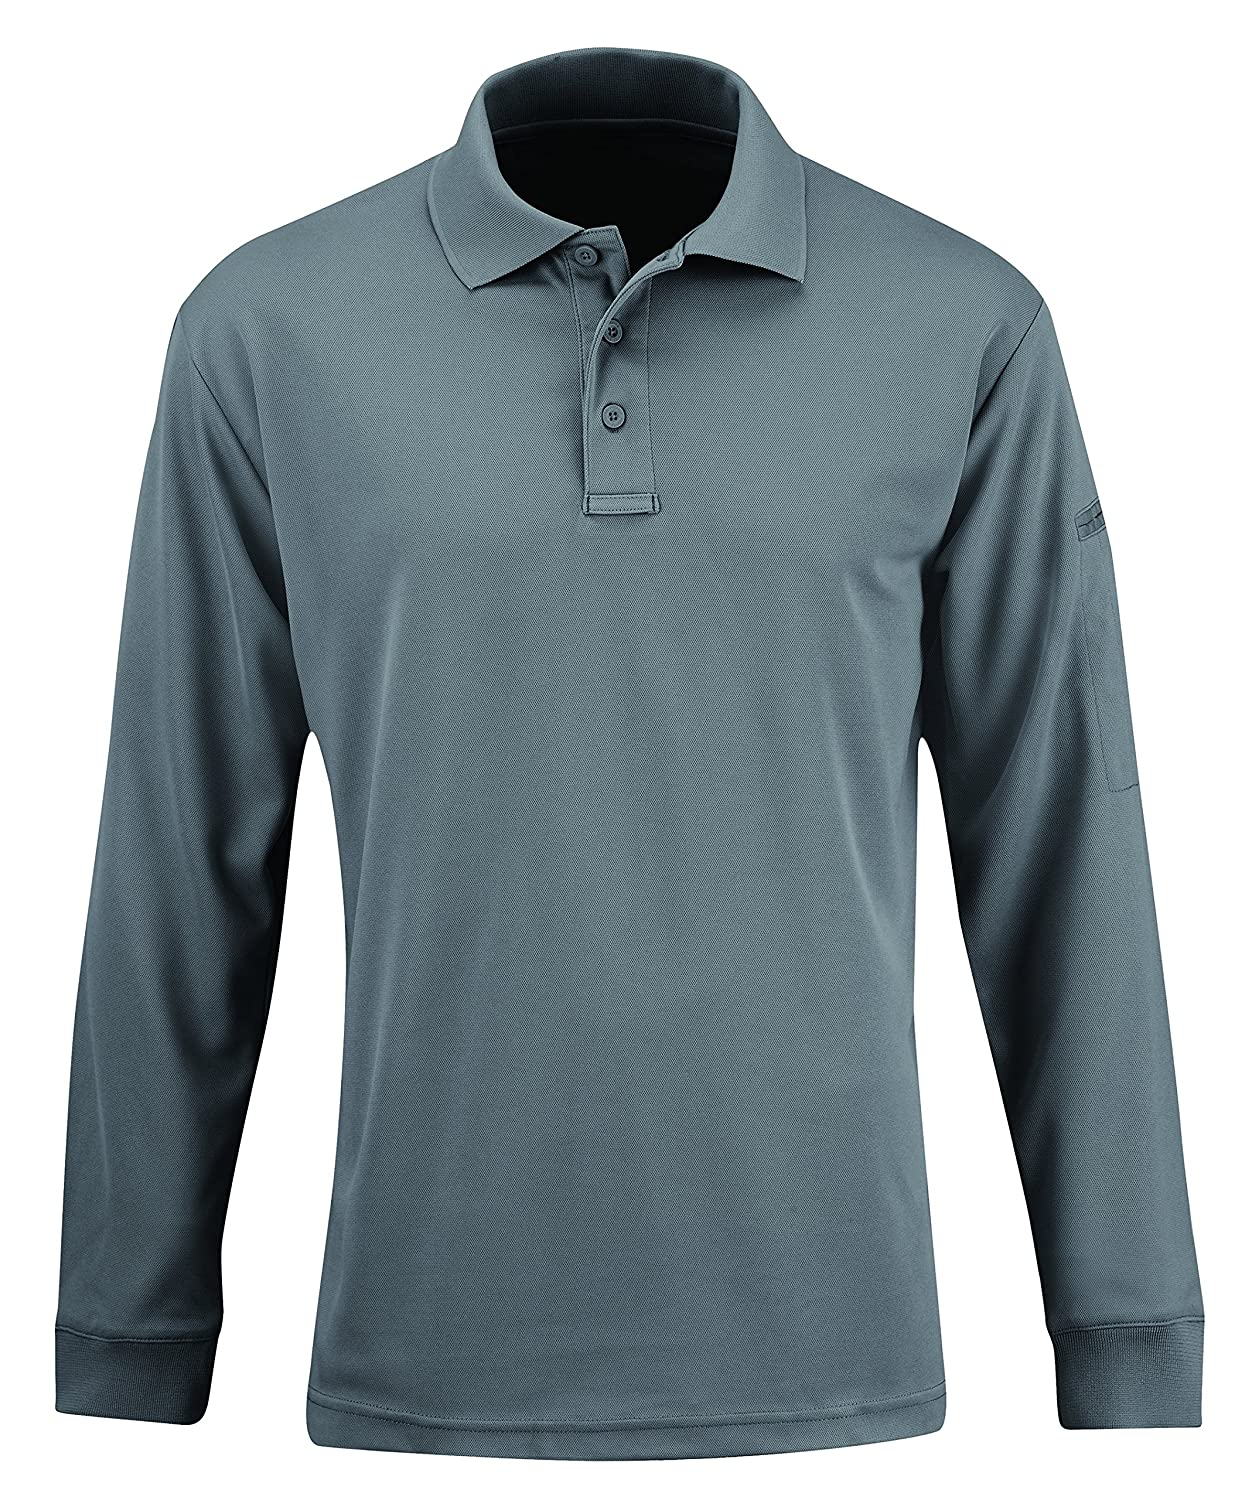 Propper Mens Uniform Long Sleeve Polo Shirt